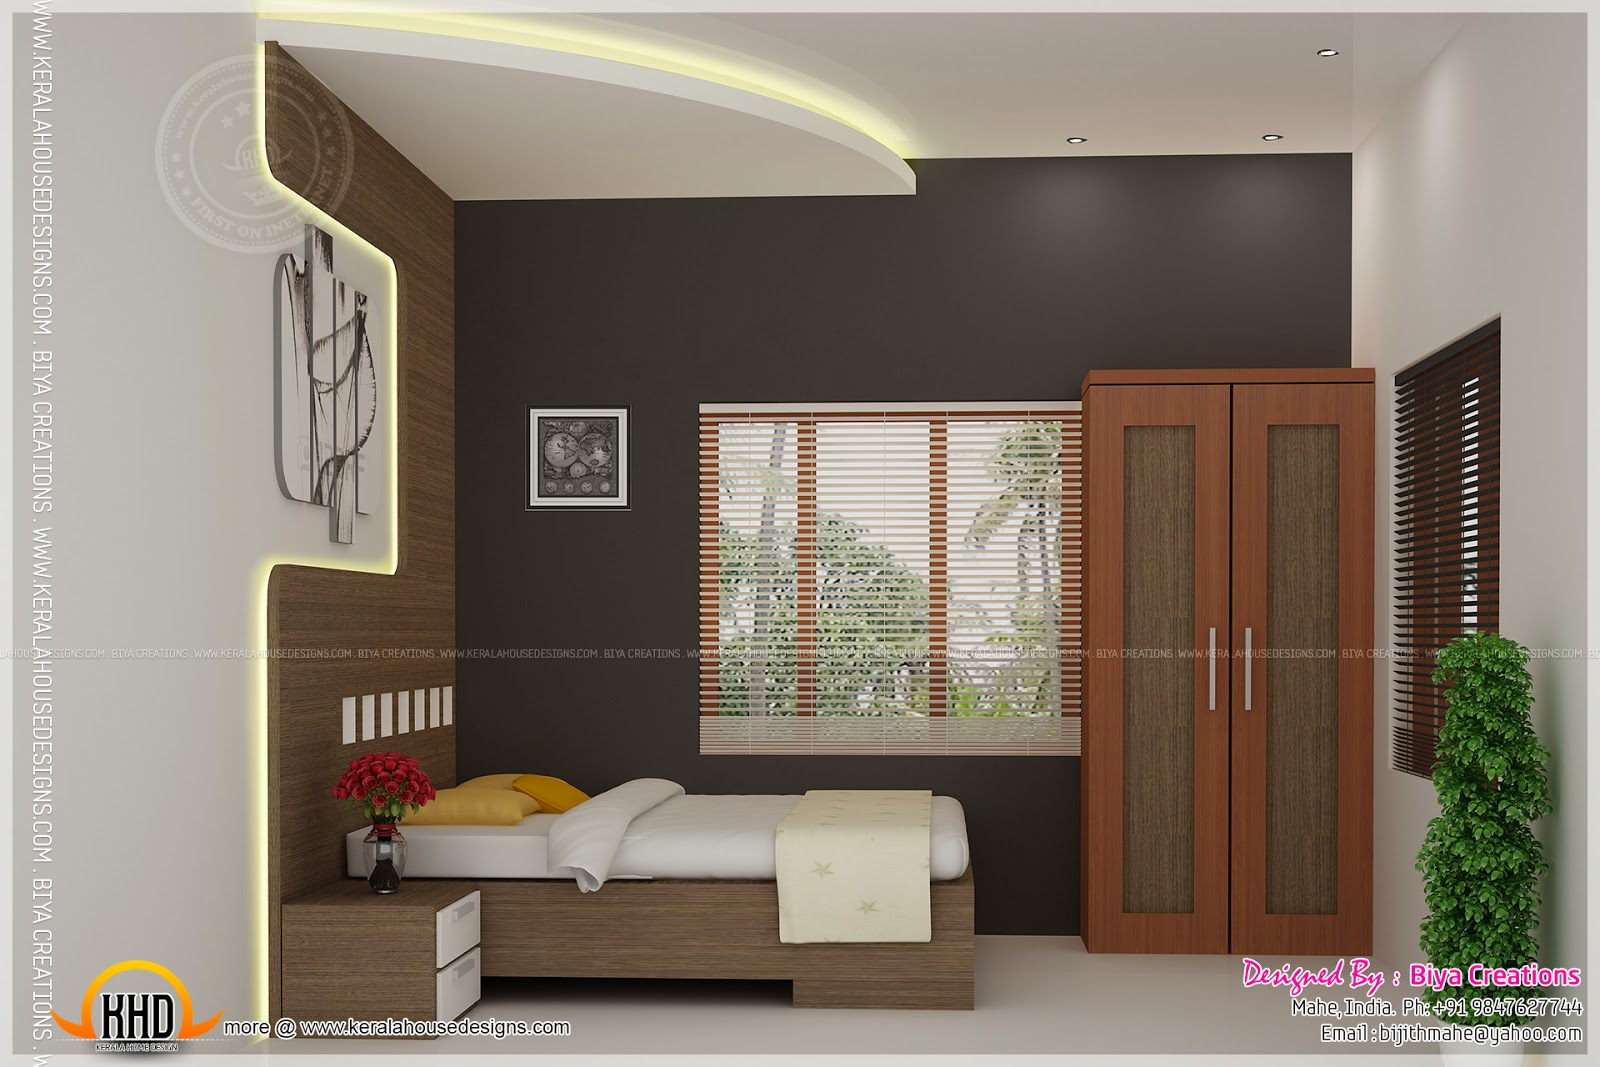 Bedroom kid bedroom and kitchen interior kerala home for Interior designs in house